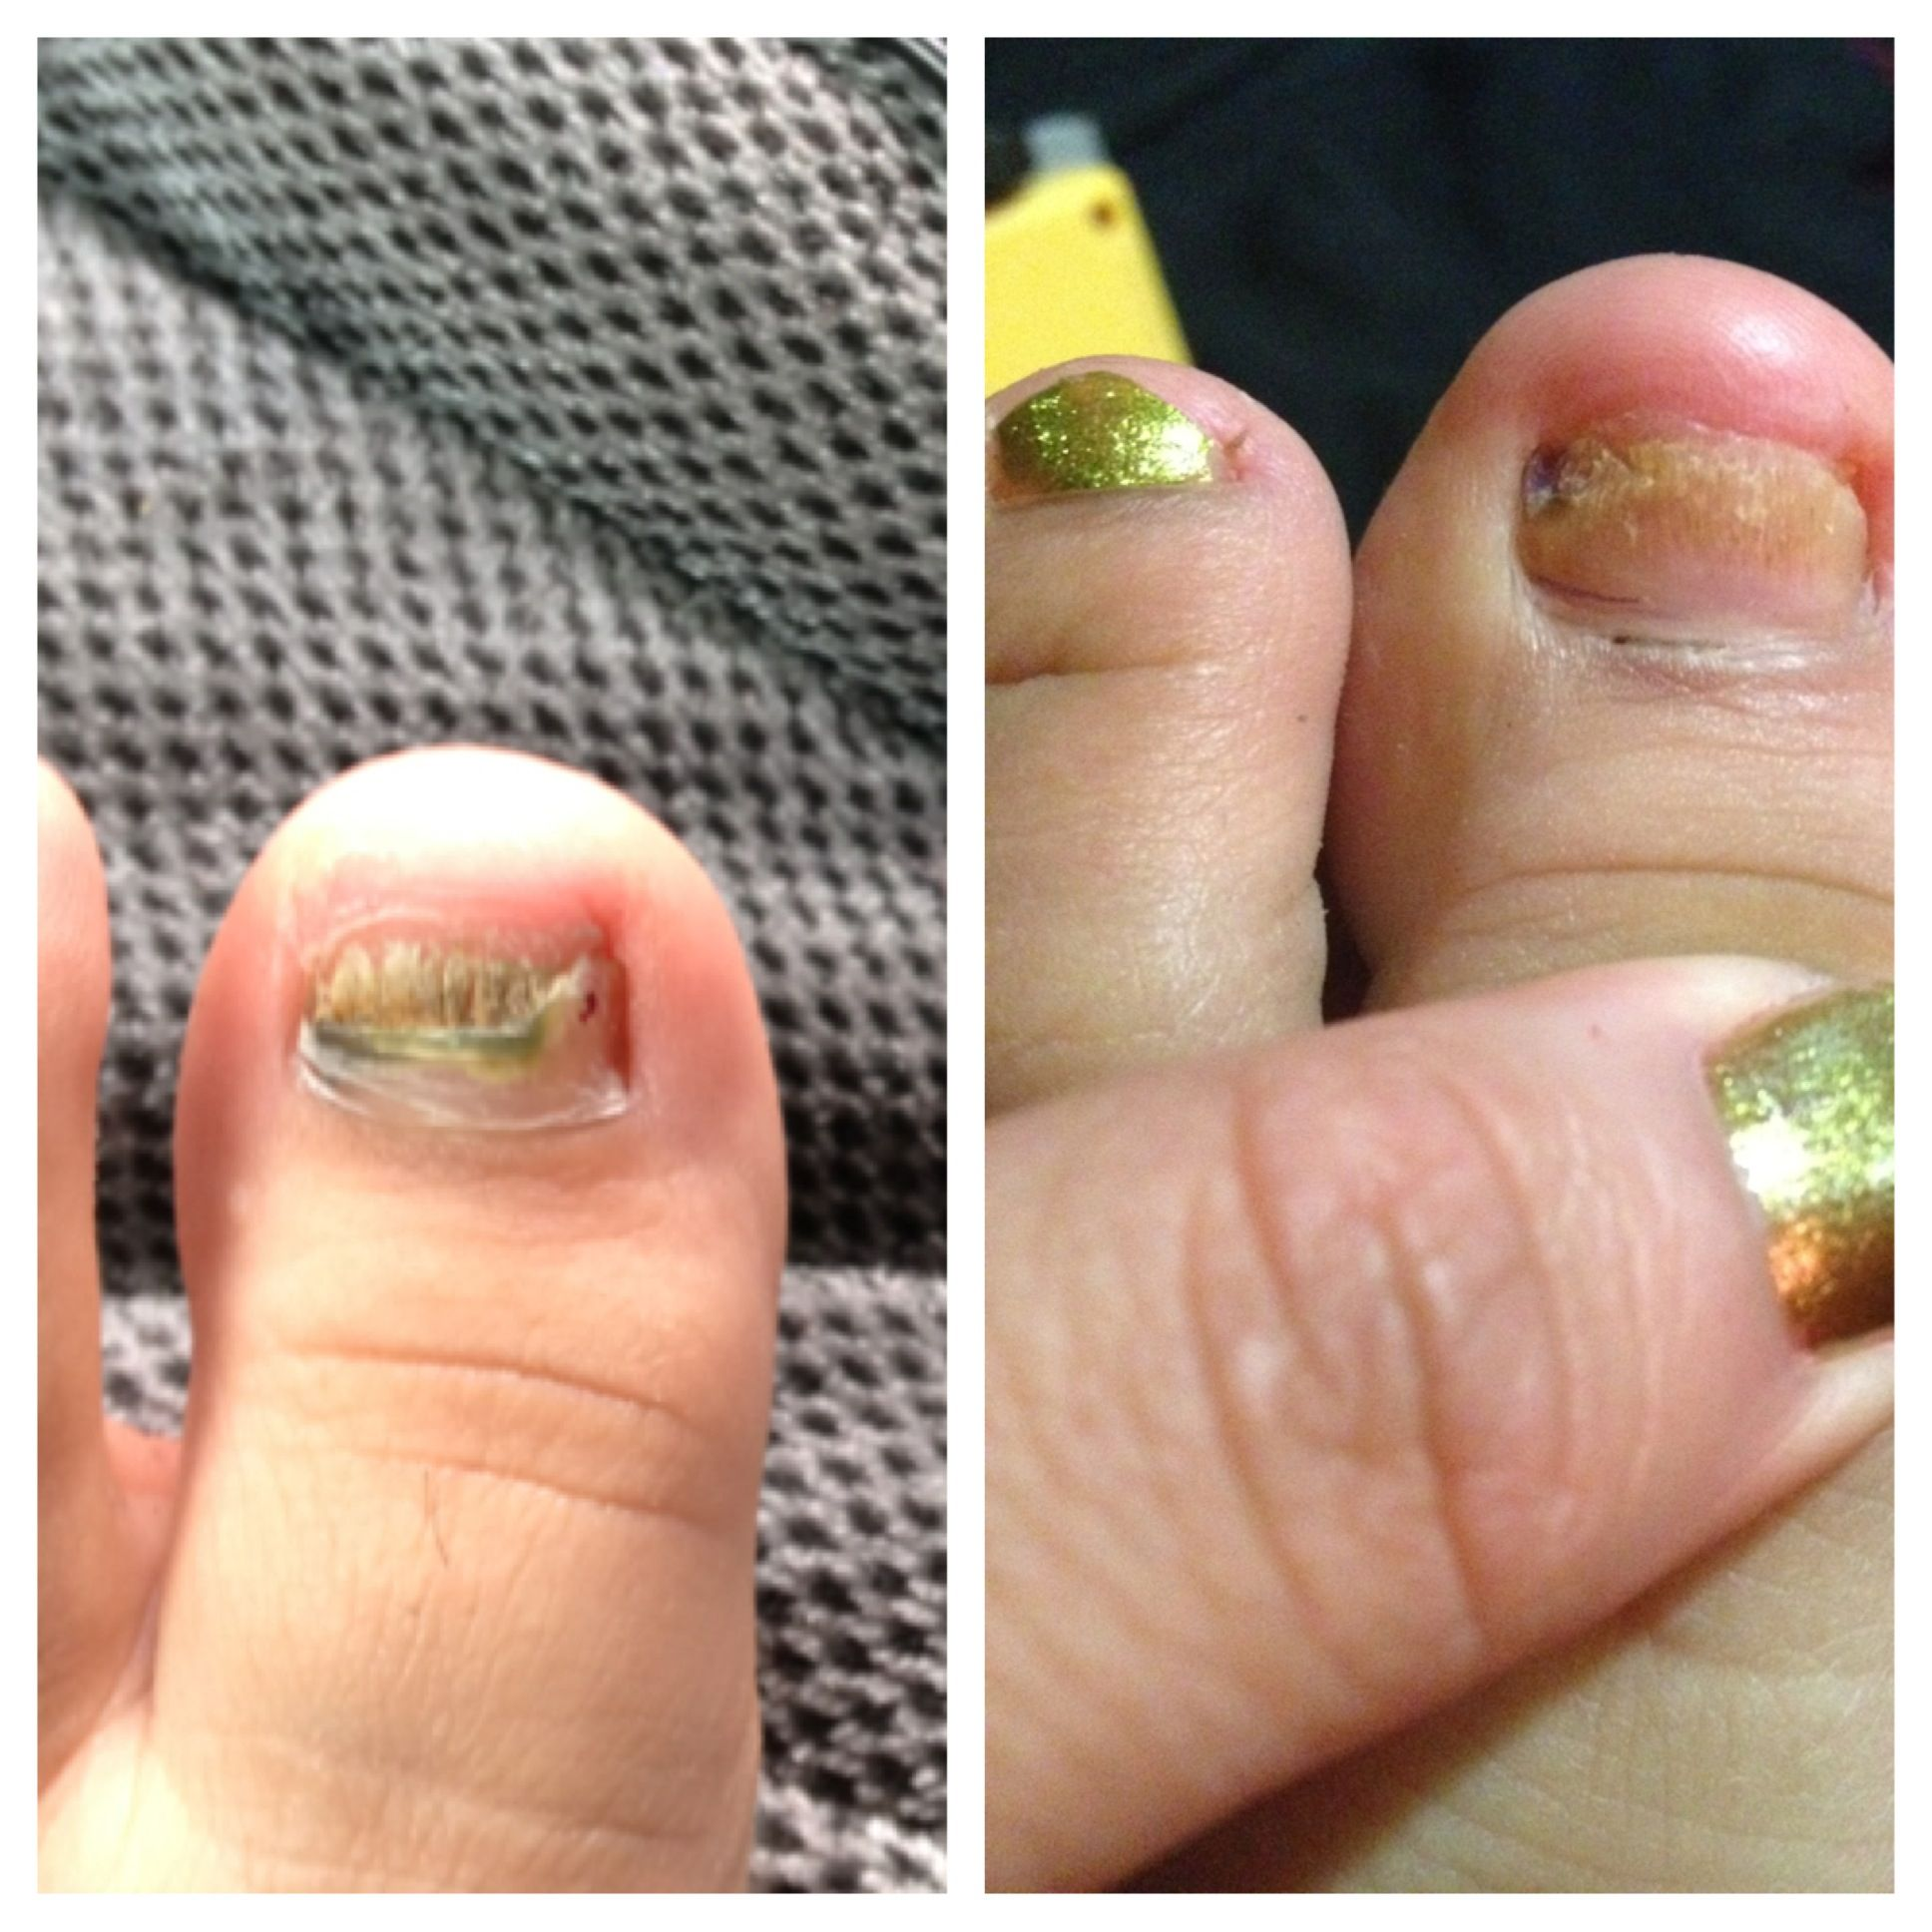 I Ve Read About Apple Cider Vinegar For Toe Nail Fungus Truthful